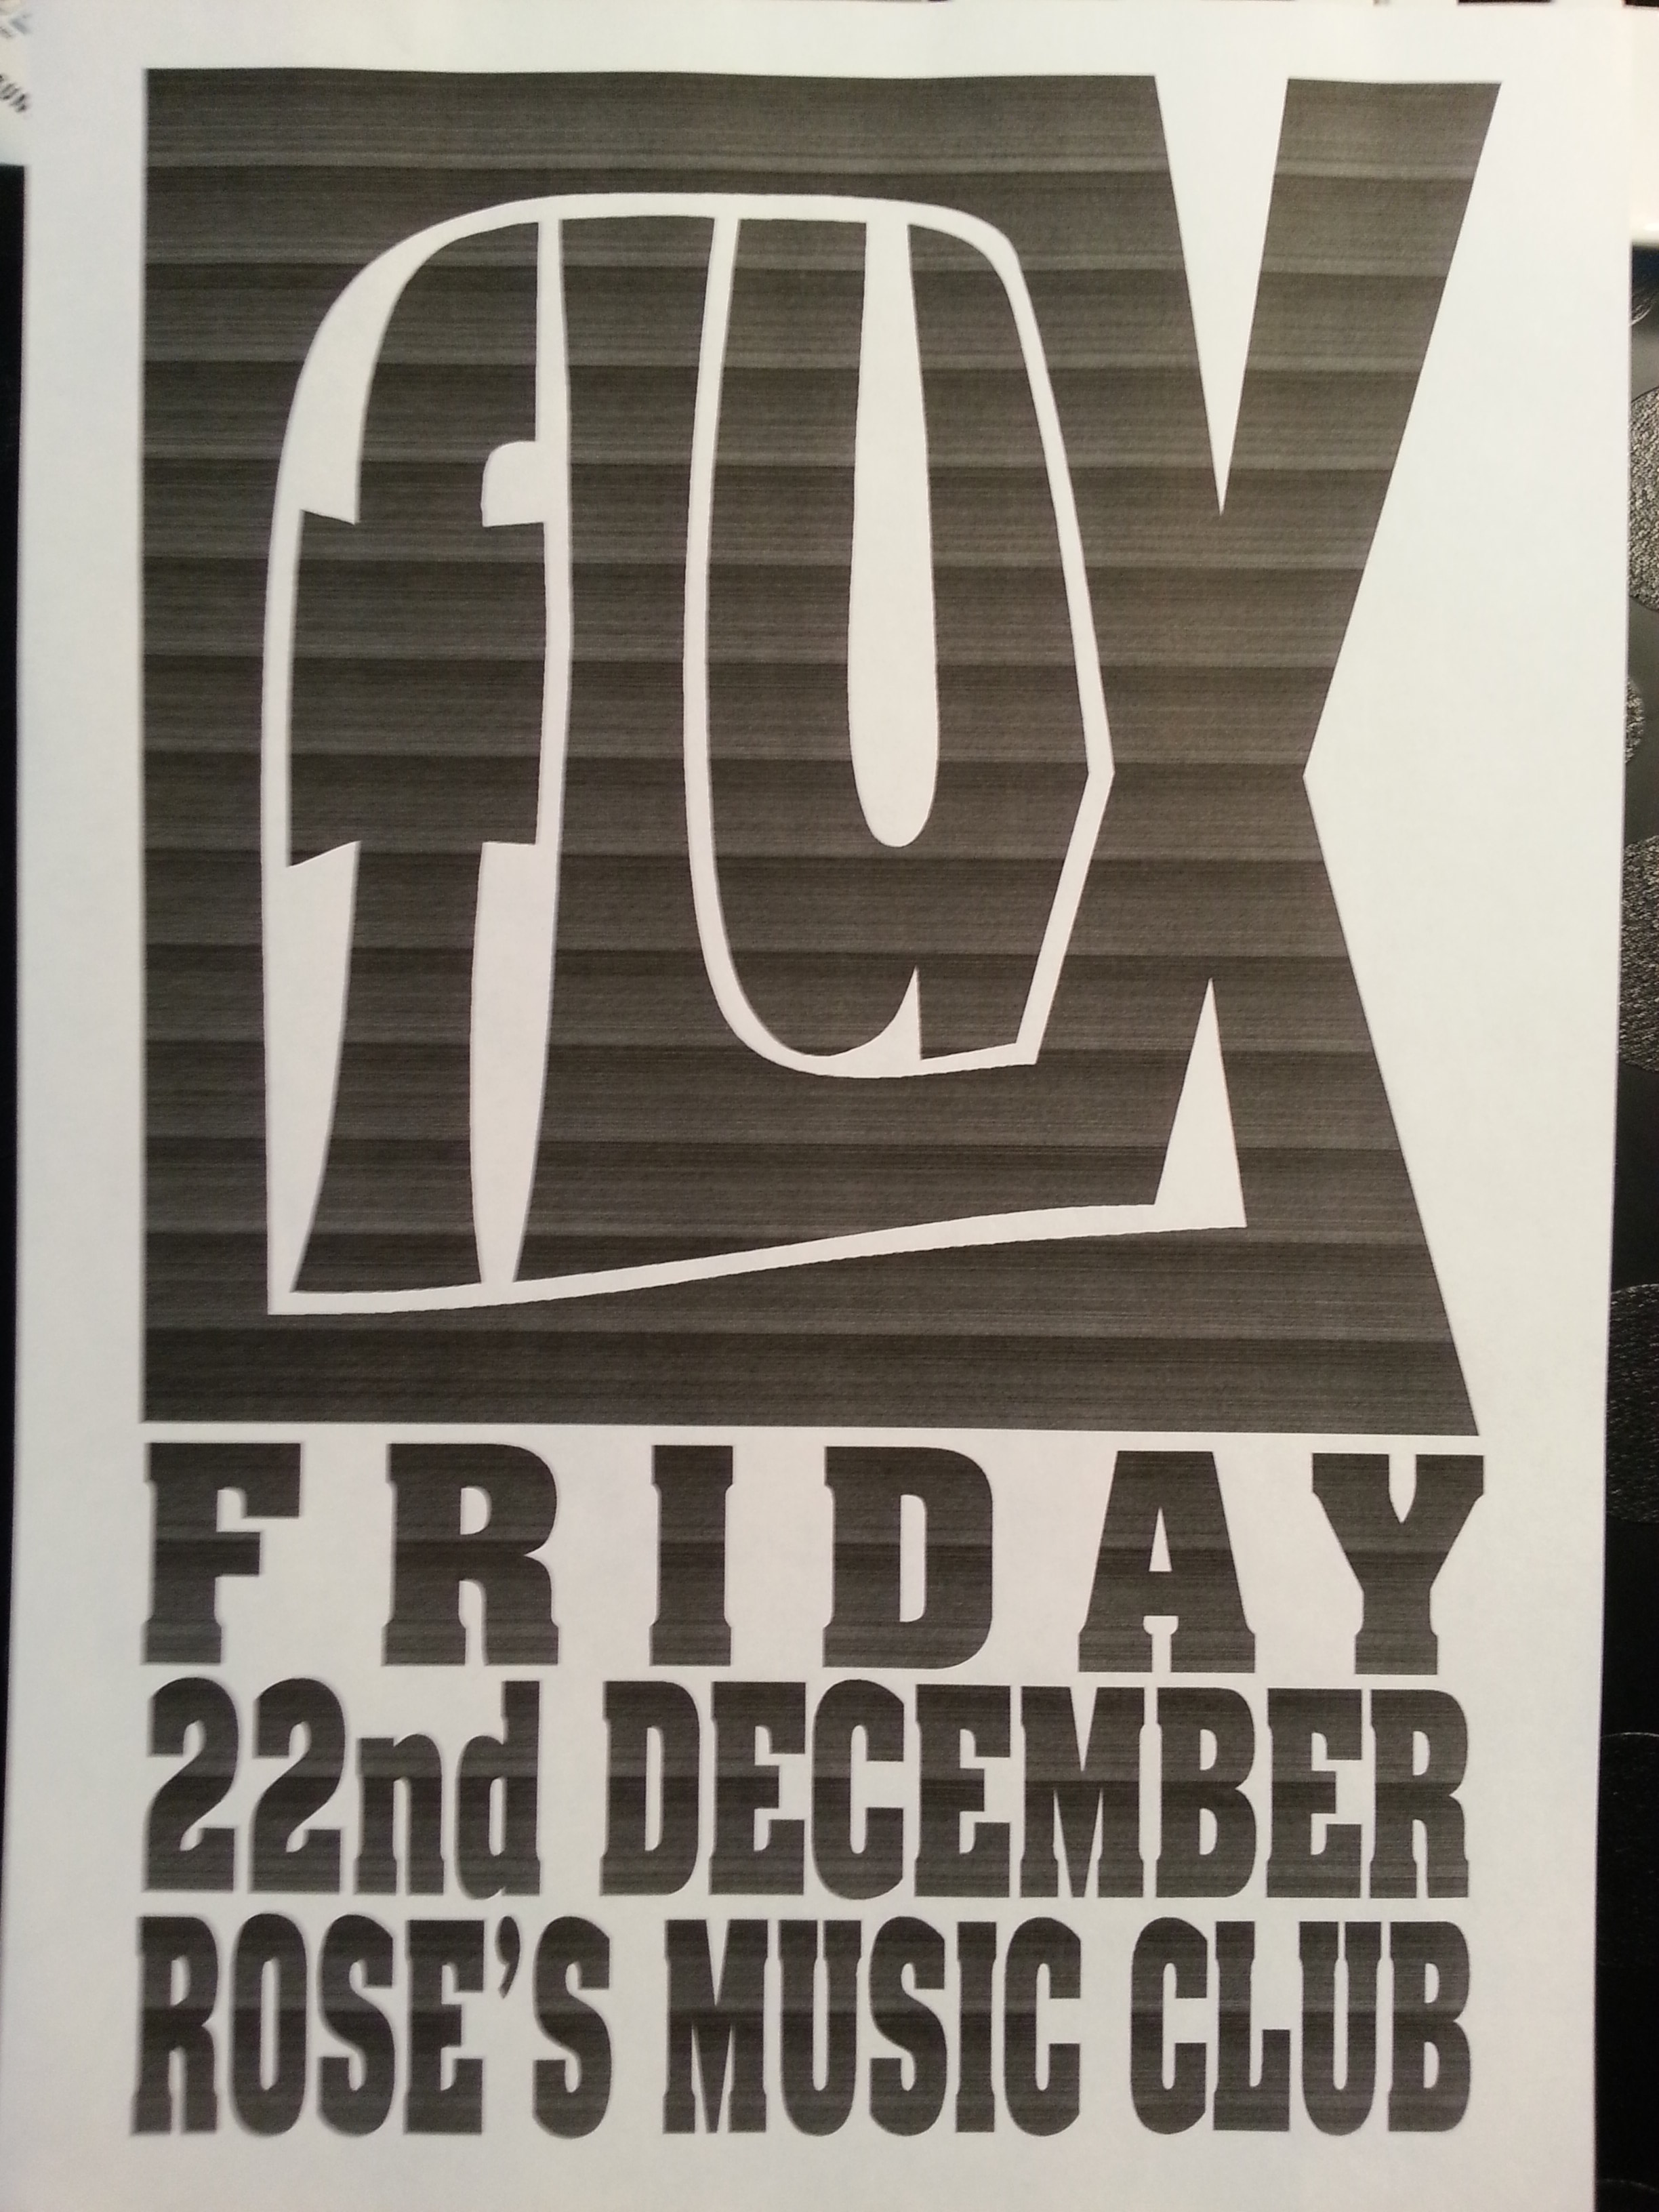 Gig at Rose's Music Club - FLUX - 1995